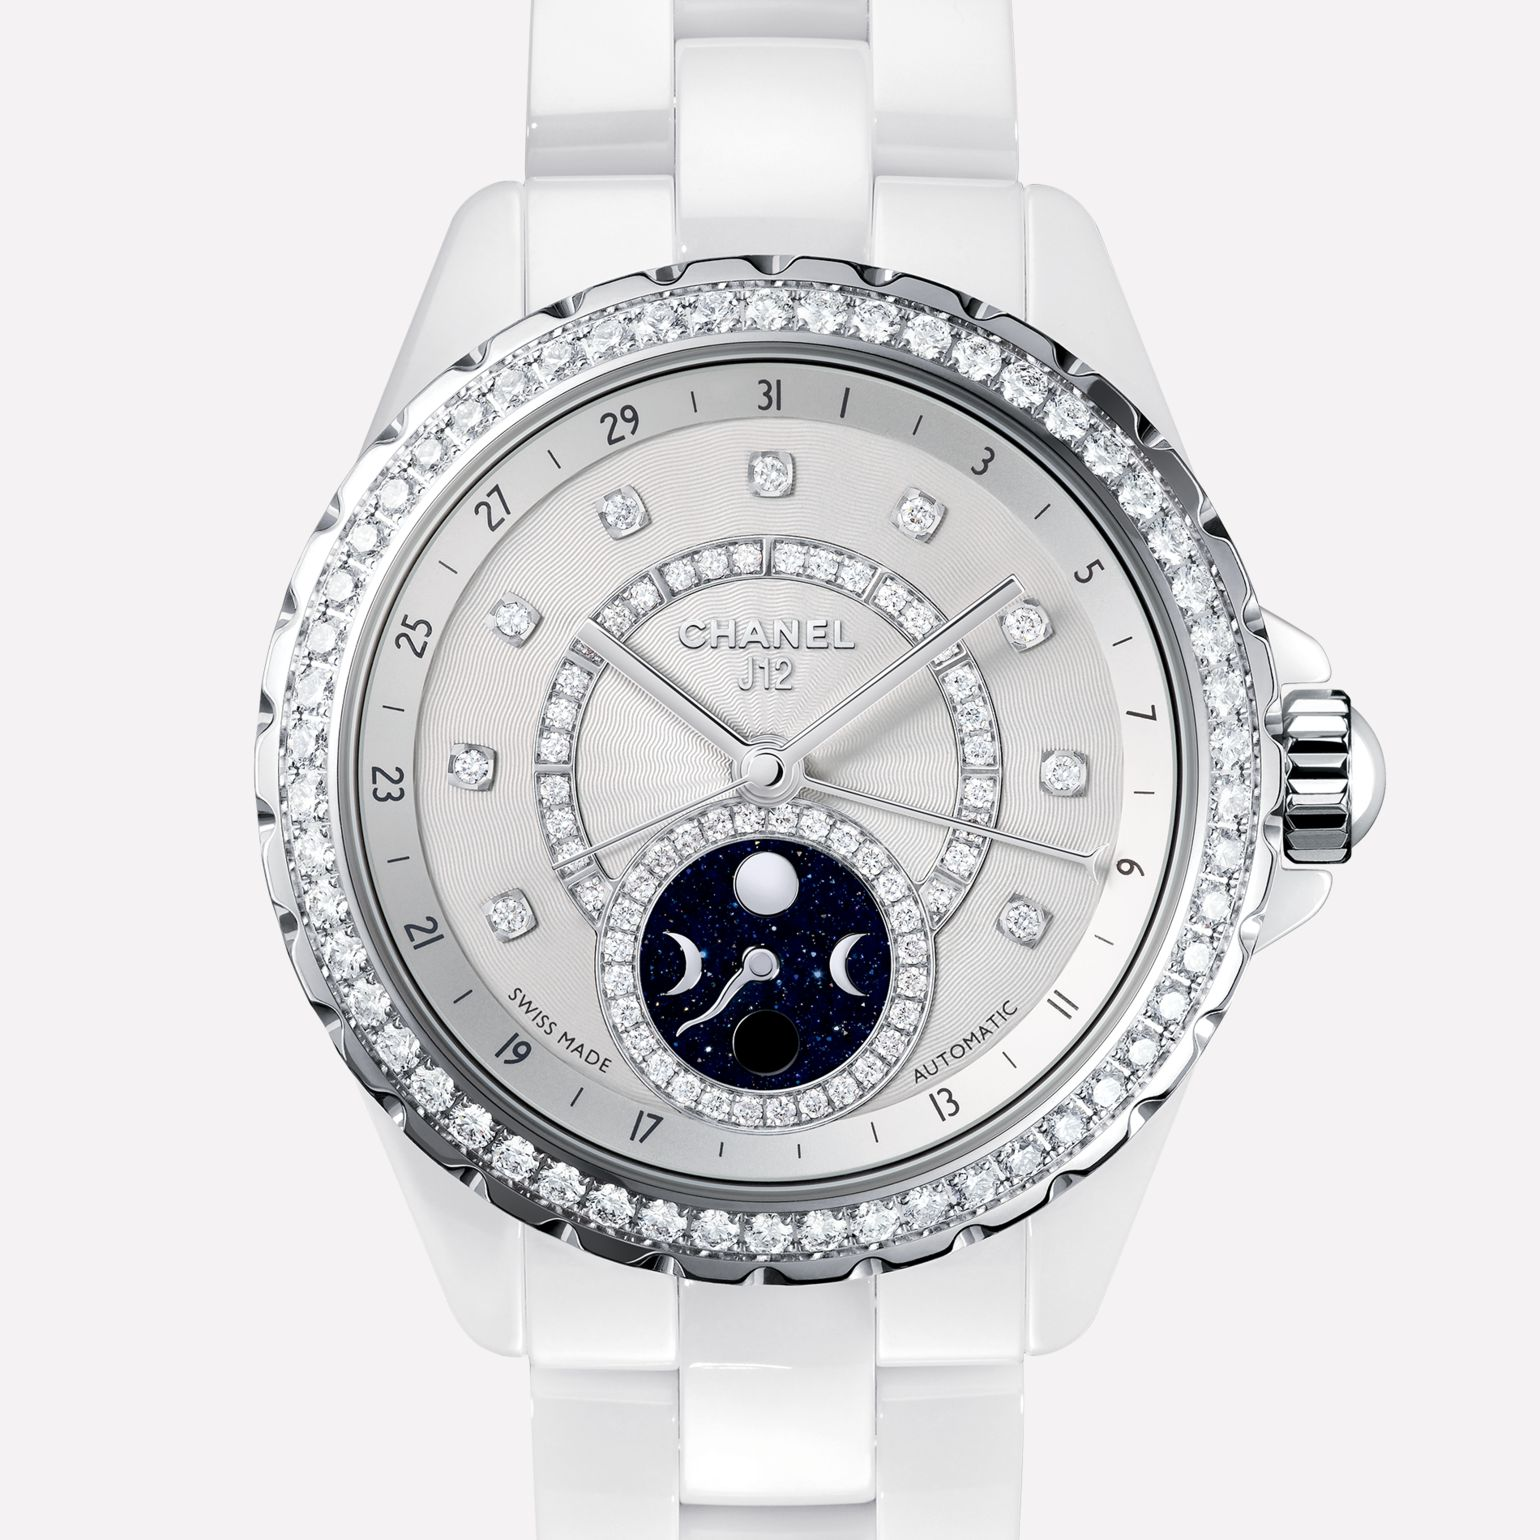 J12 Moon phase White highly resistant ceramic and steel, brilliant-cut diamond bezel, moon phase and dial indicators